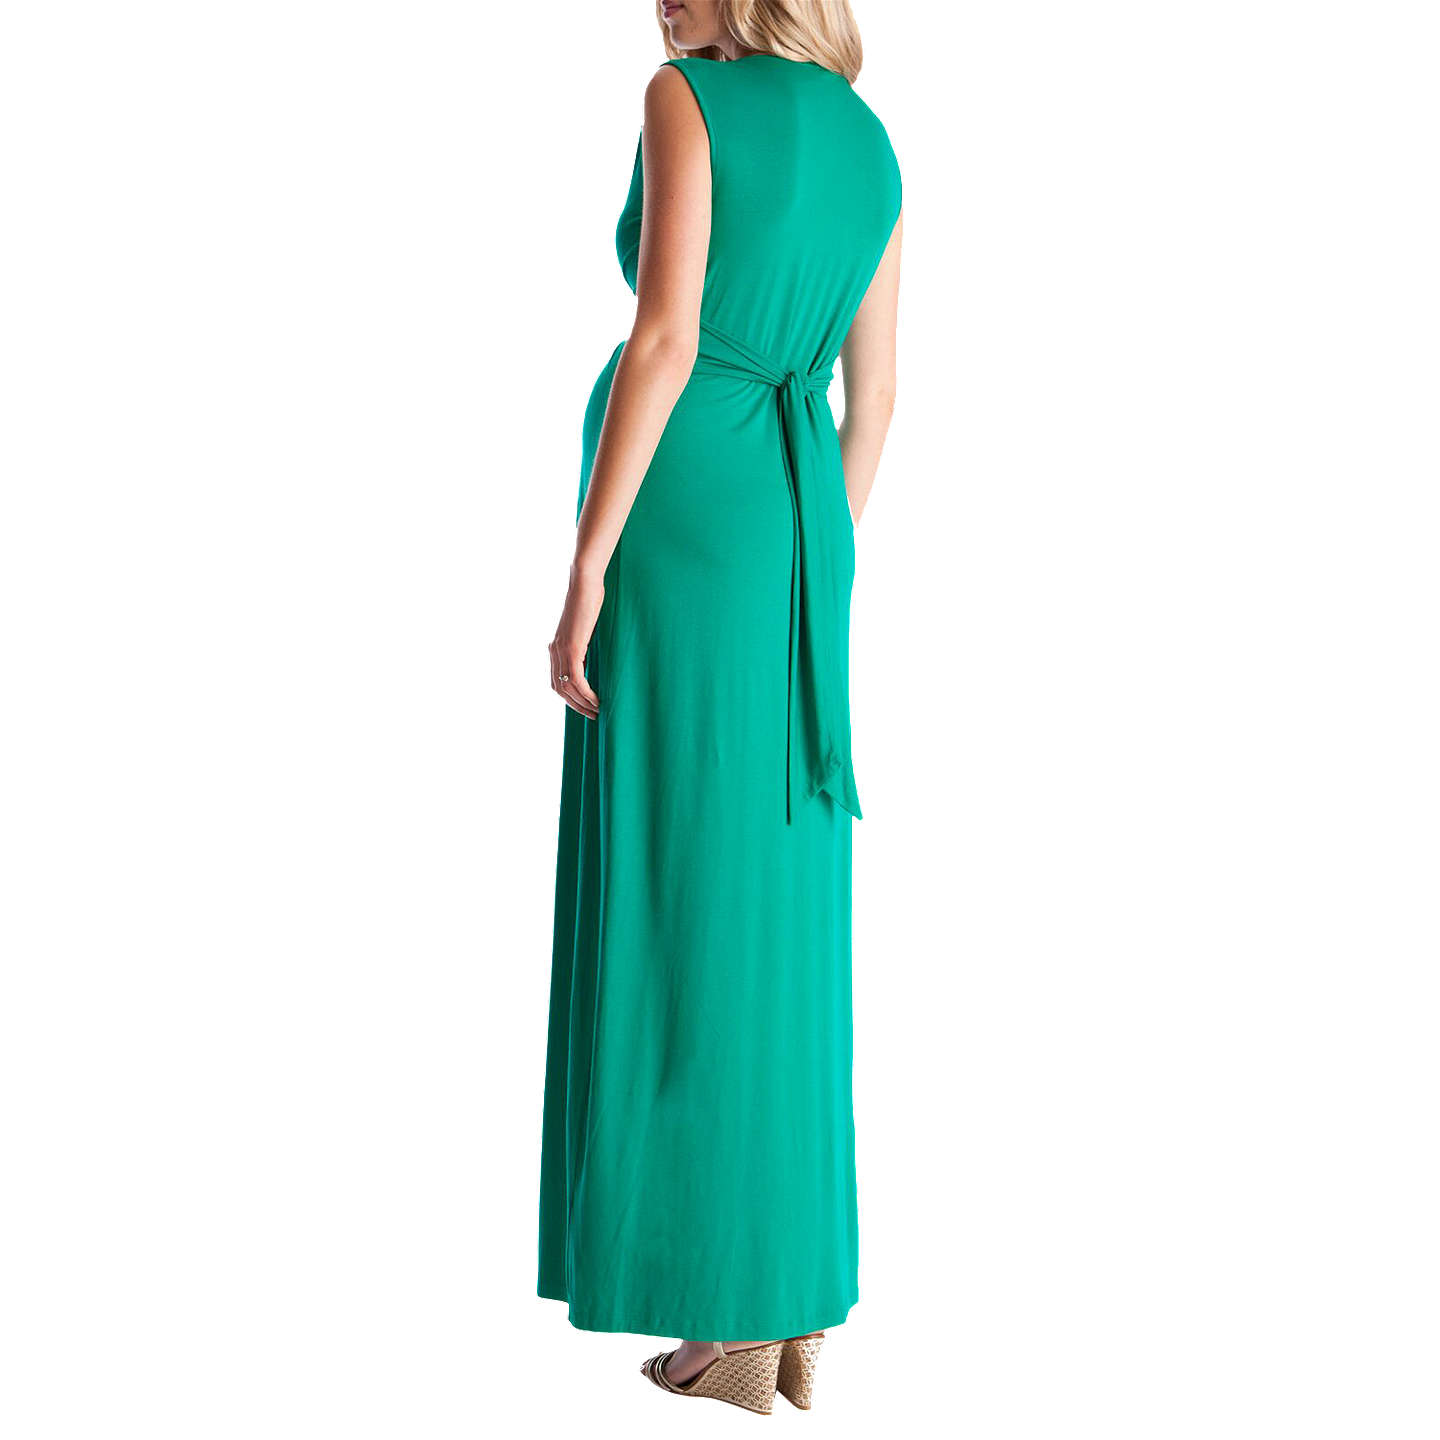 Séraphine Knot Front Maxi Maternity Dress, Emerald at John Lewis